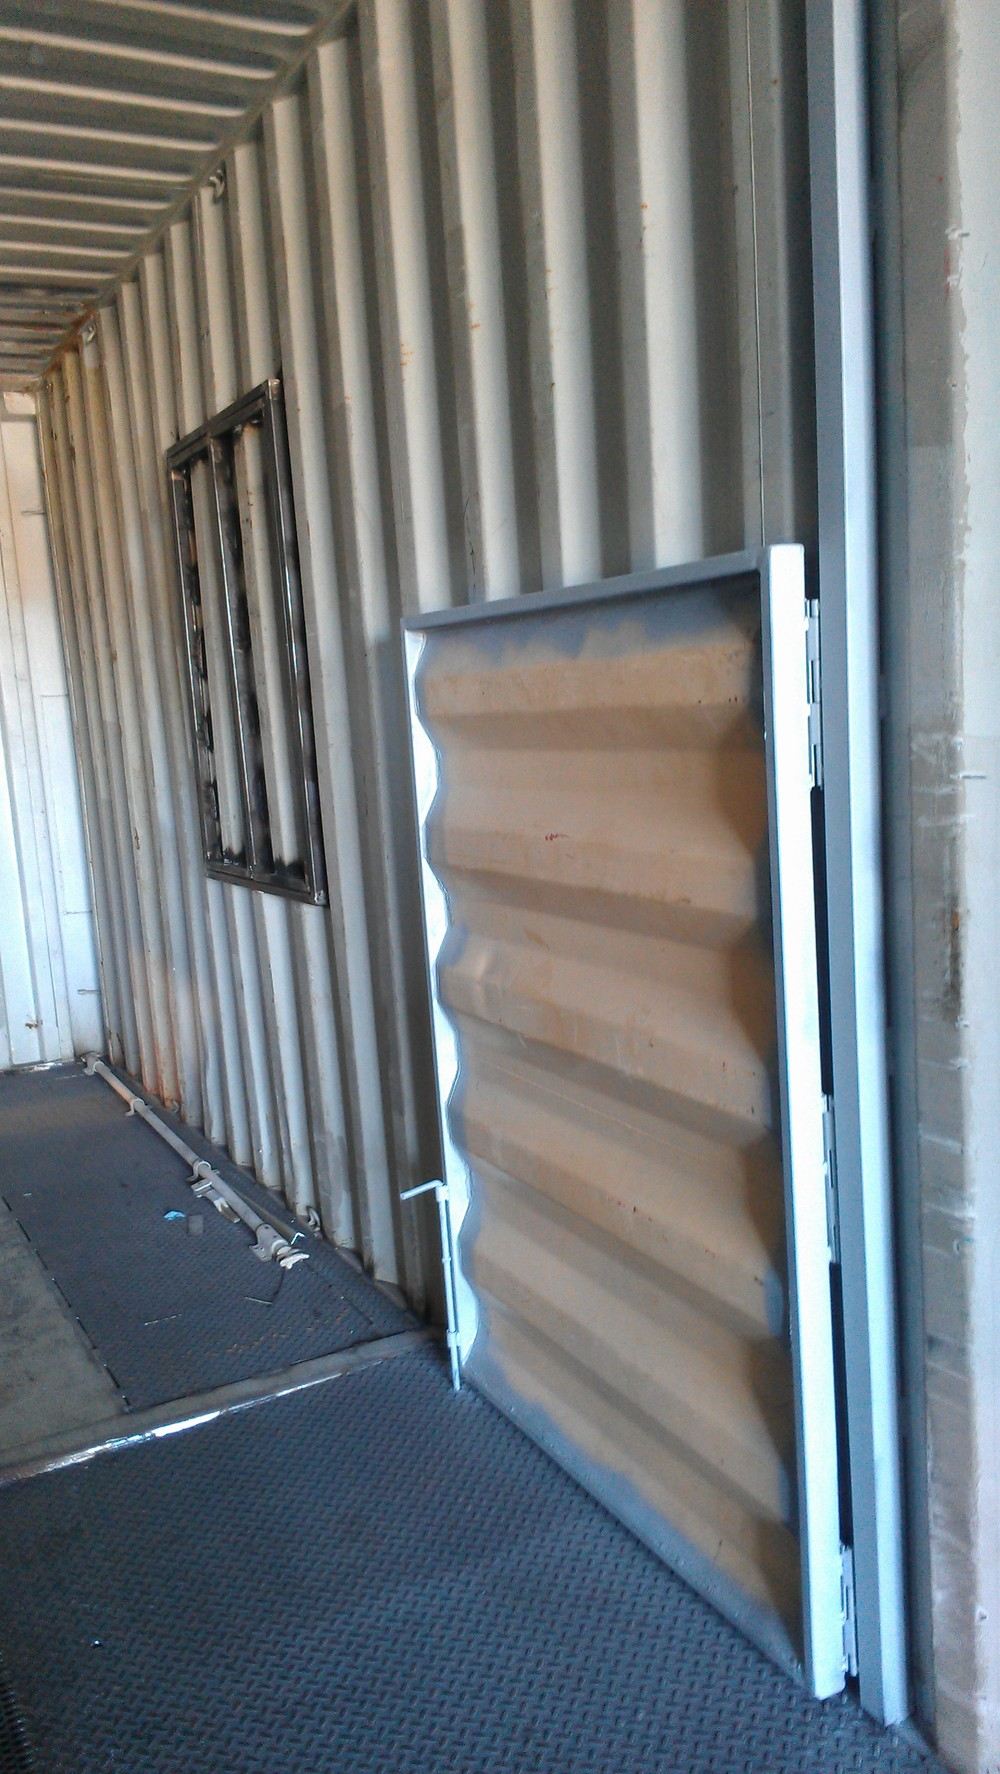 Fire Training Container with swinging partition